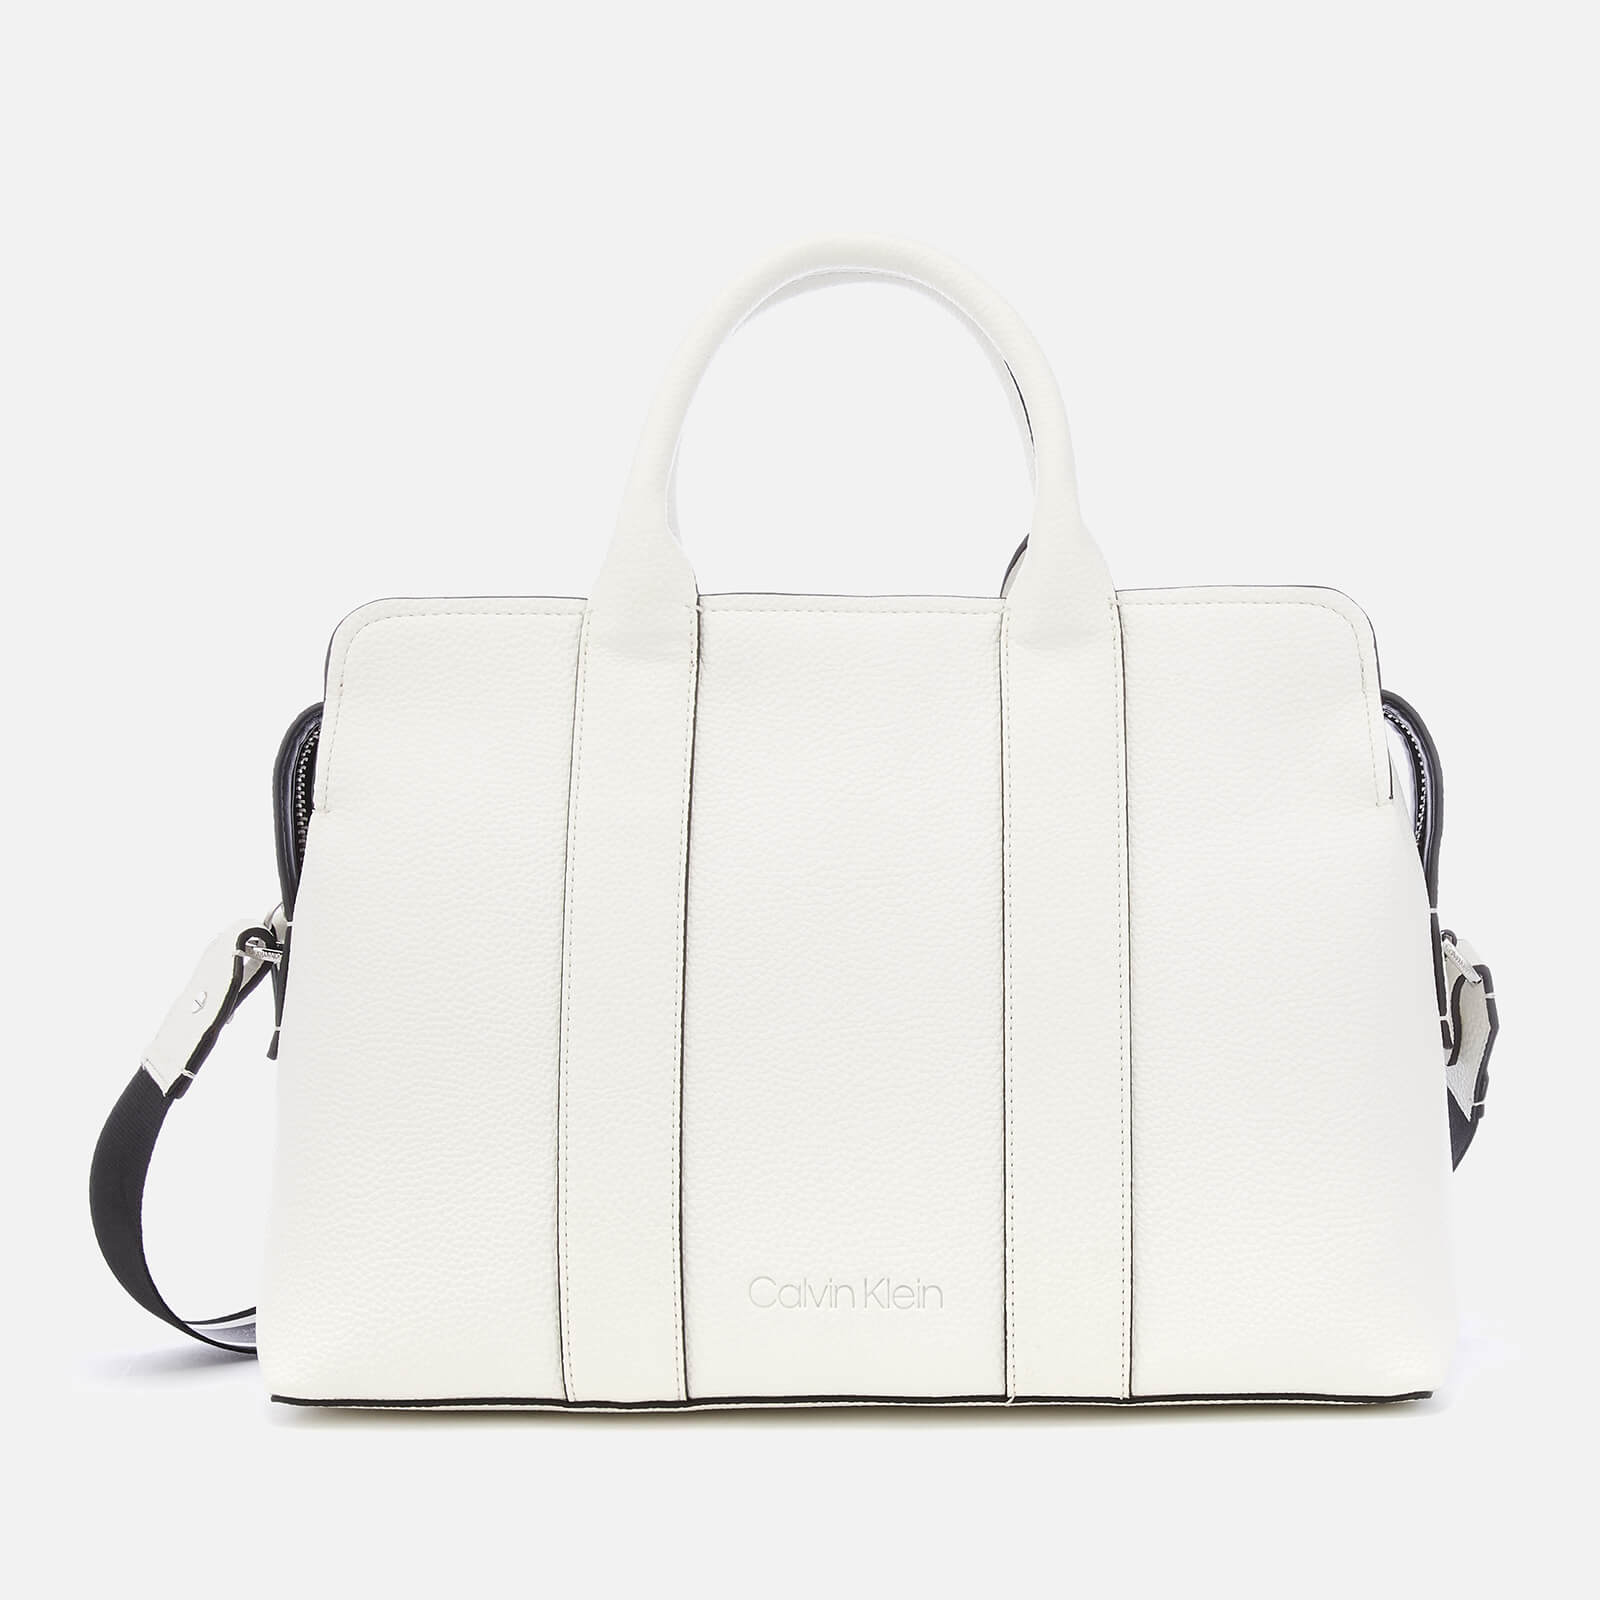 4567193b5a7689 Calvin Klein Women's Race Tote Bag - Bright White